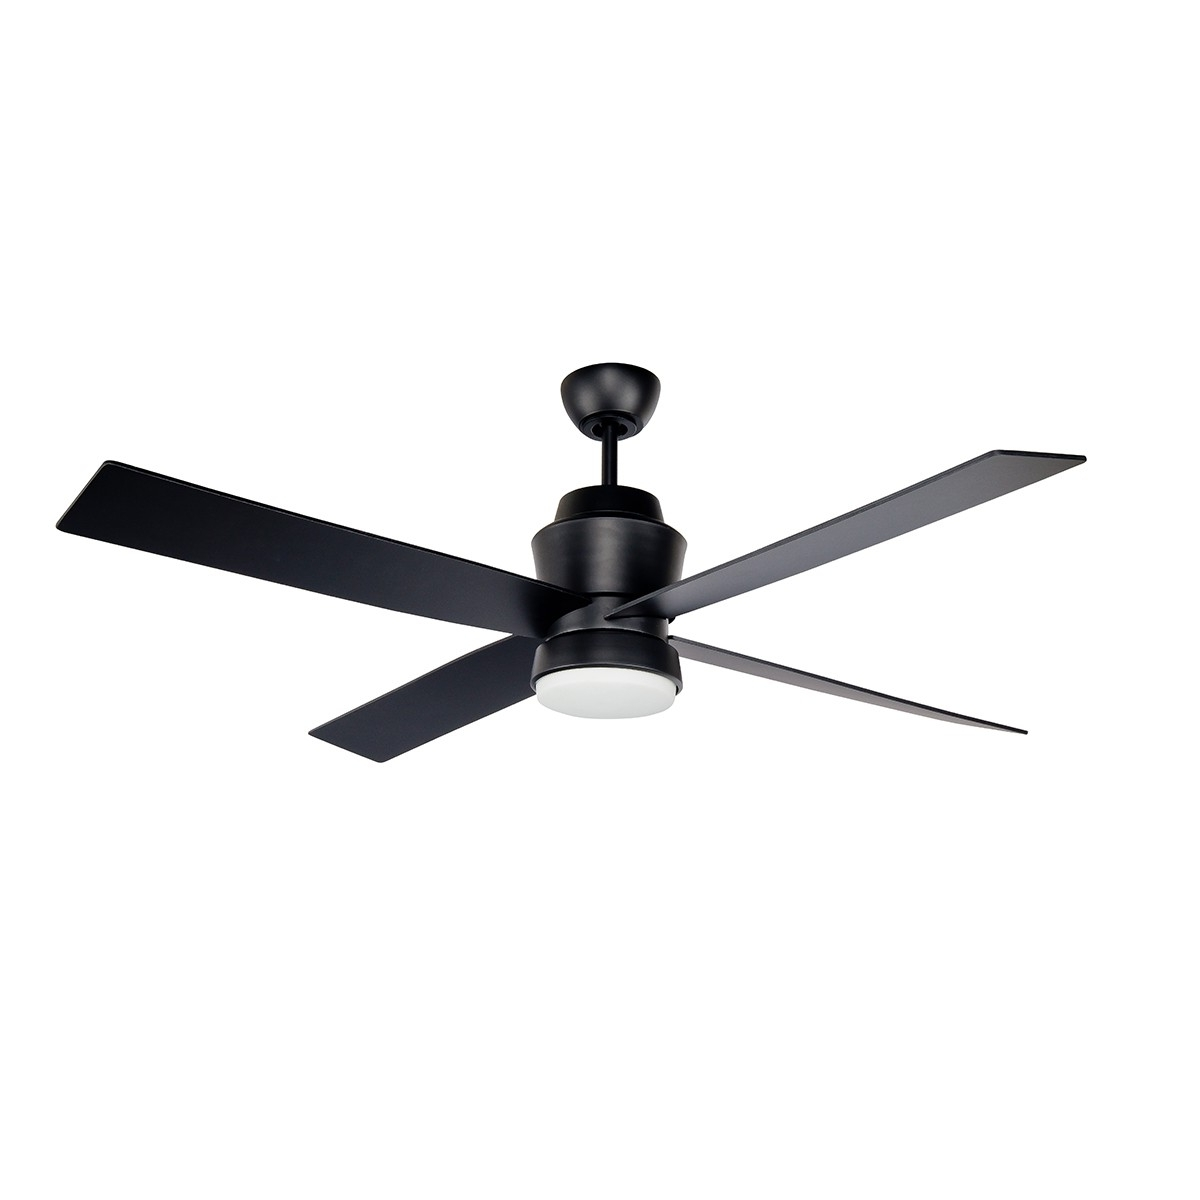 Modern Outdoor Ceiling Fans Throughout Widely Used Prologue Outdoor Ceiling Fan :: Stori Modern (View 14 of 20)